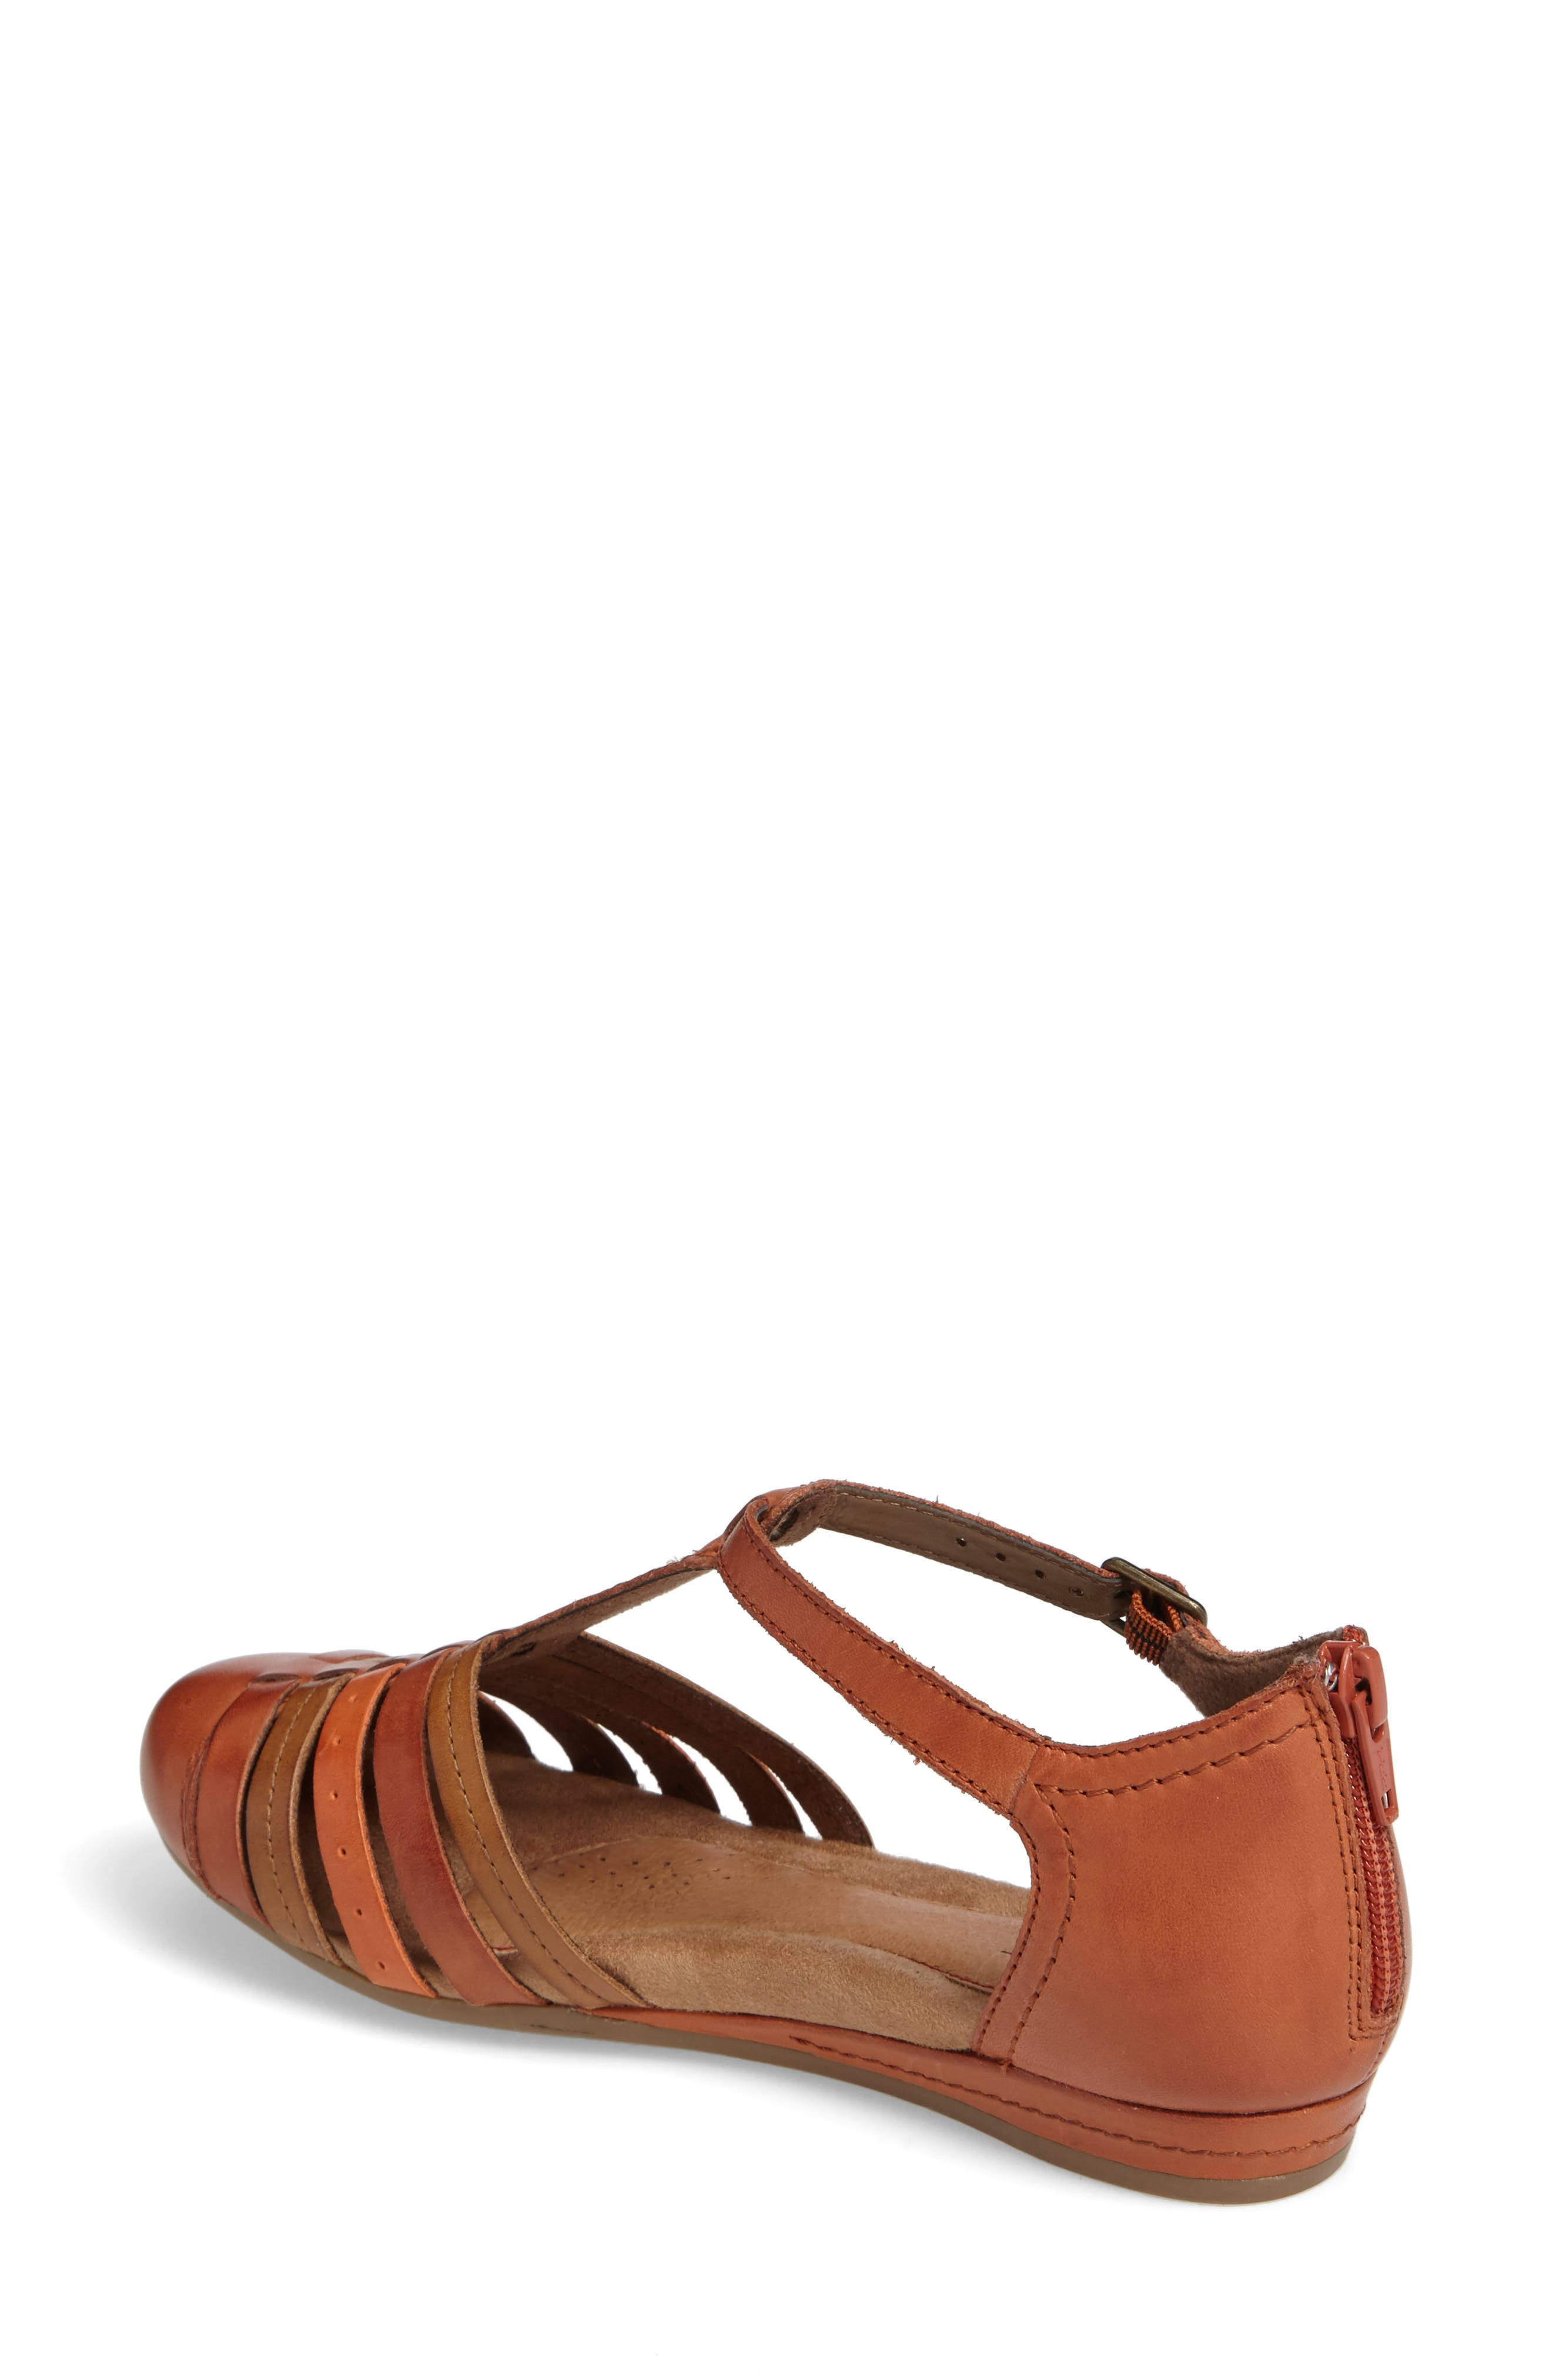 Galway T-Strap Sandal,                             Alternate thumbnail 7, color,